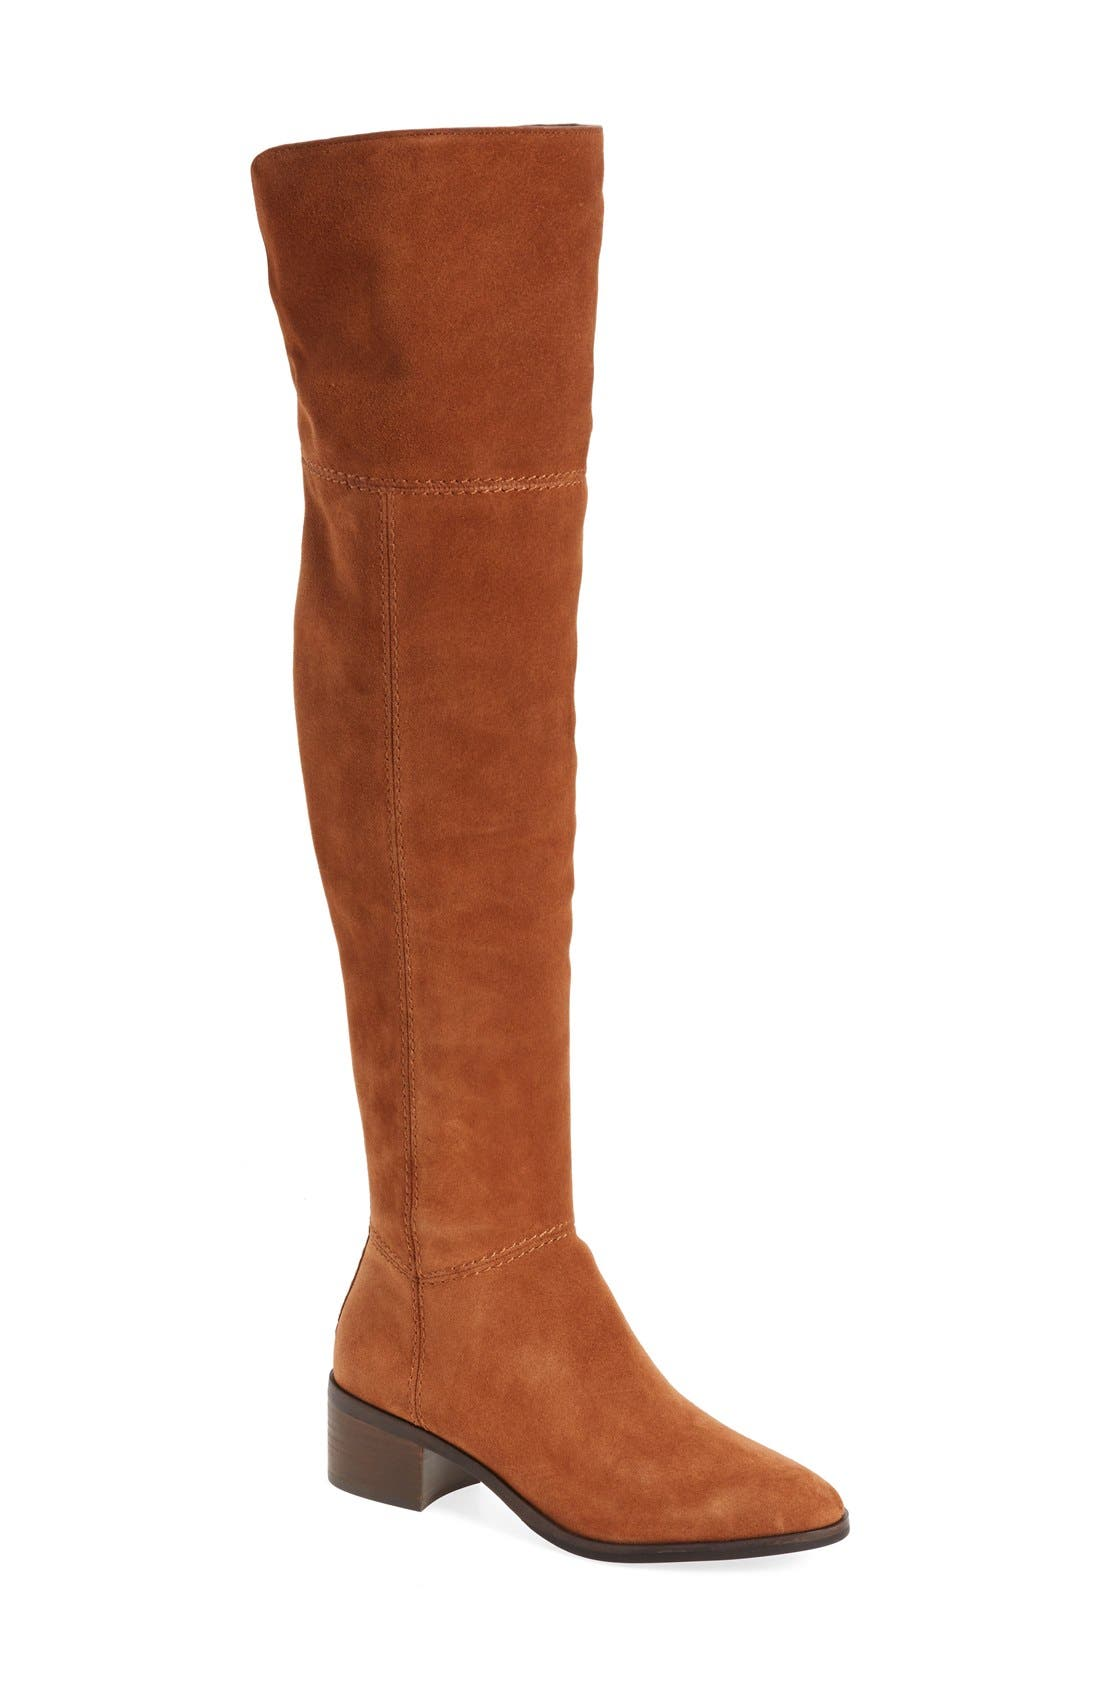 Alternate Image 1 Selected - COACH 'Lucia' Cuffable Over the Knee Boot (Women)